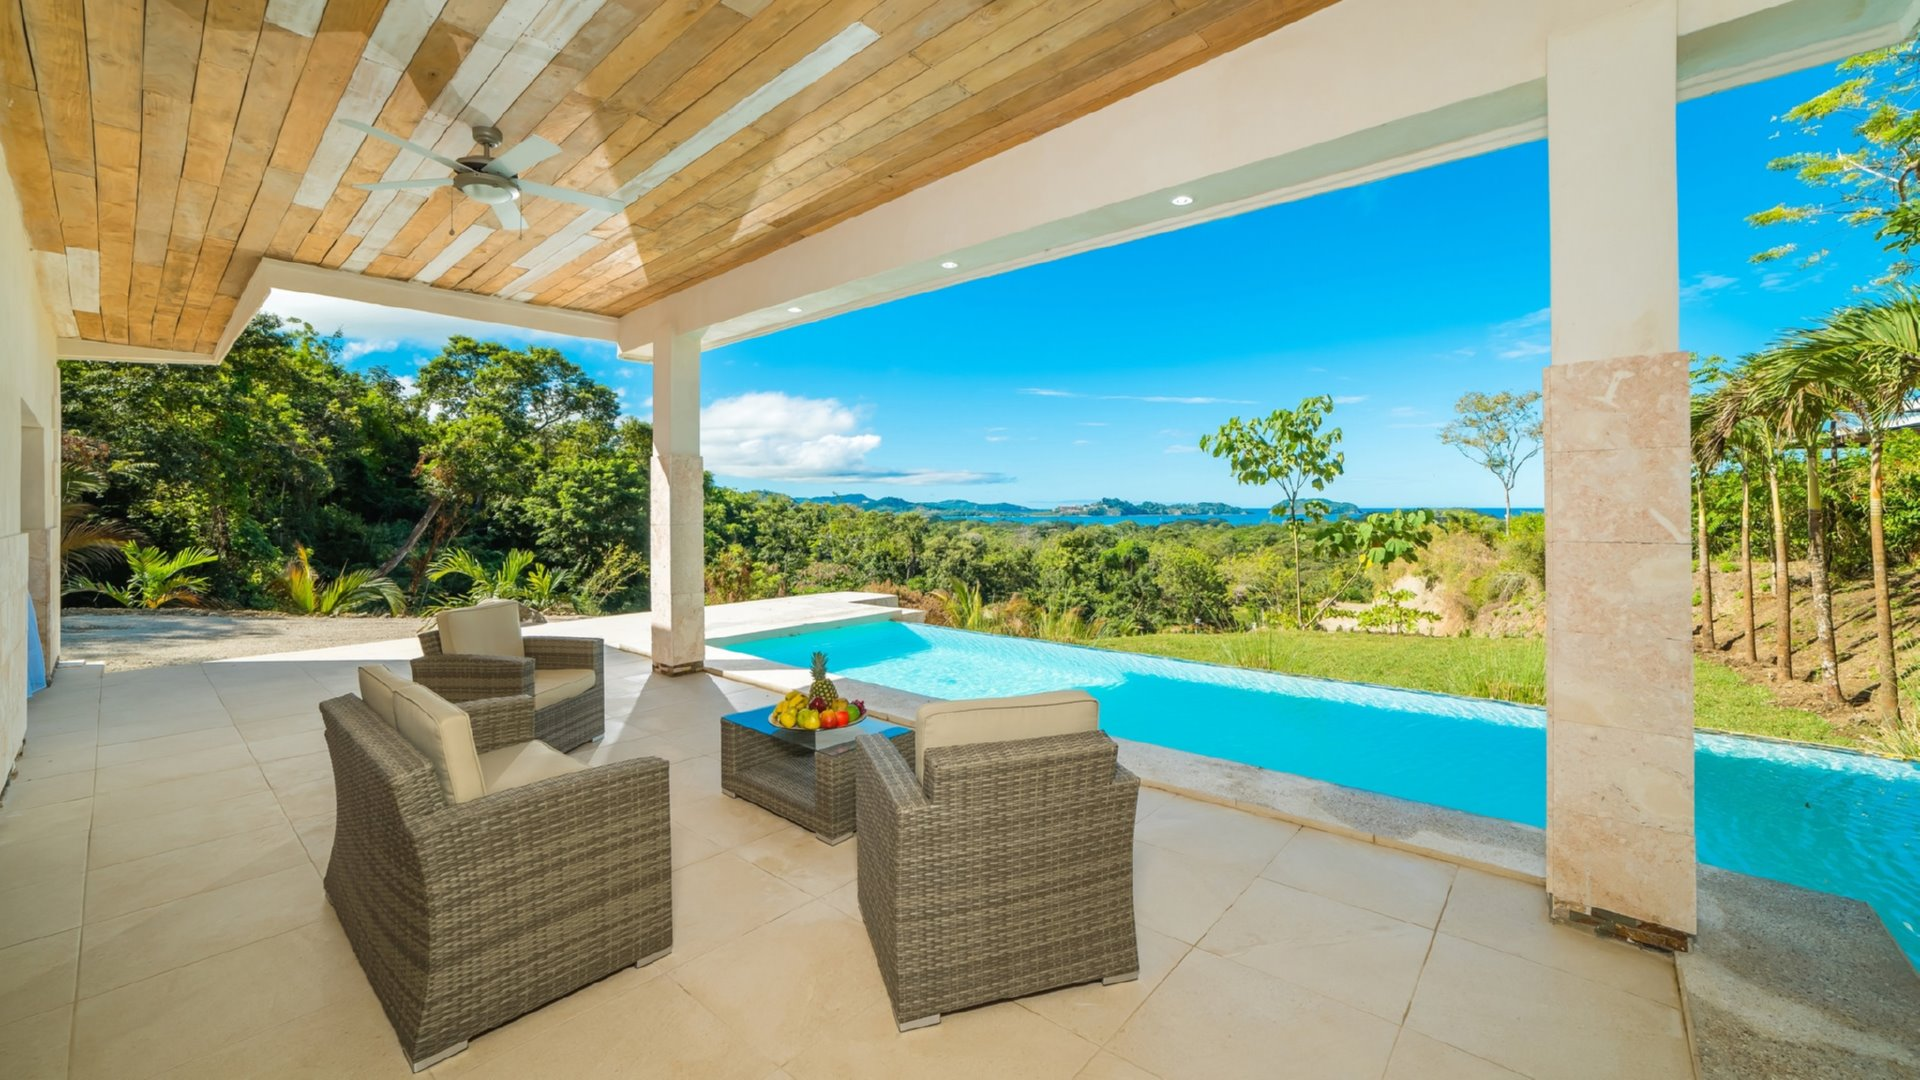 2499-The amazing views from the home for sale along the Gold Coast of Costa Rica